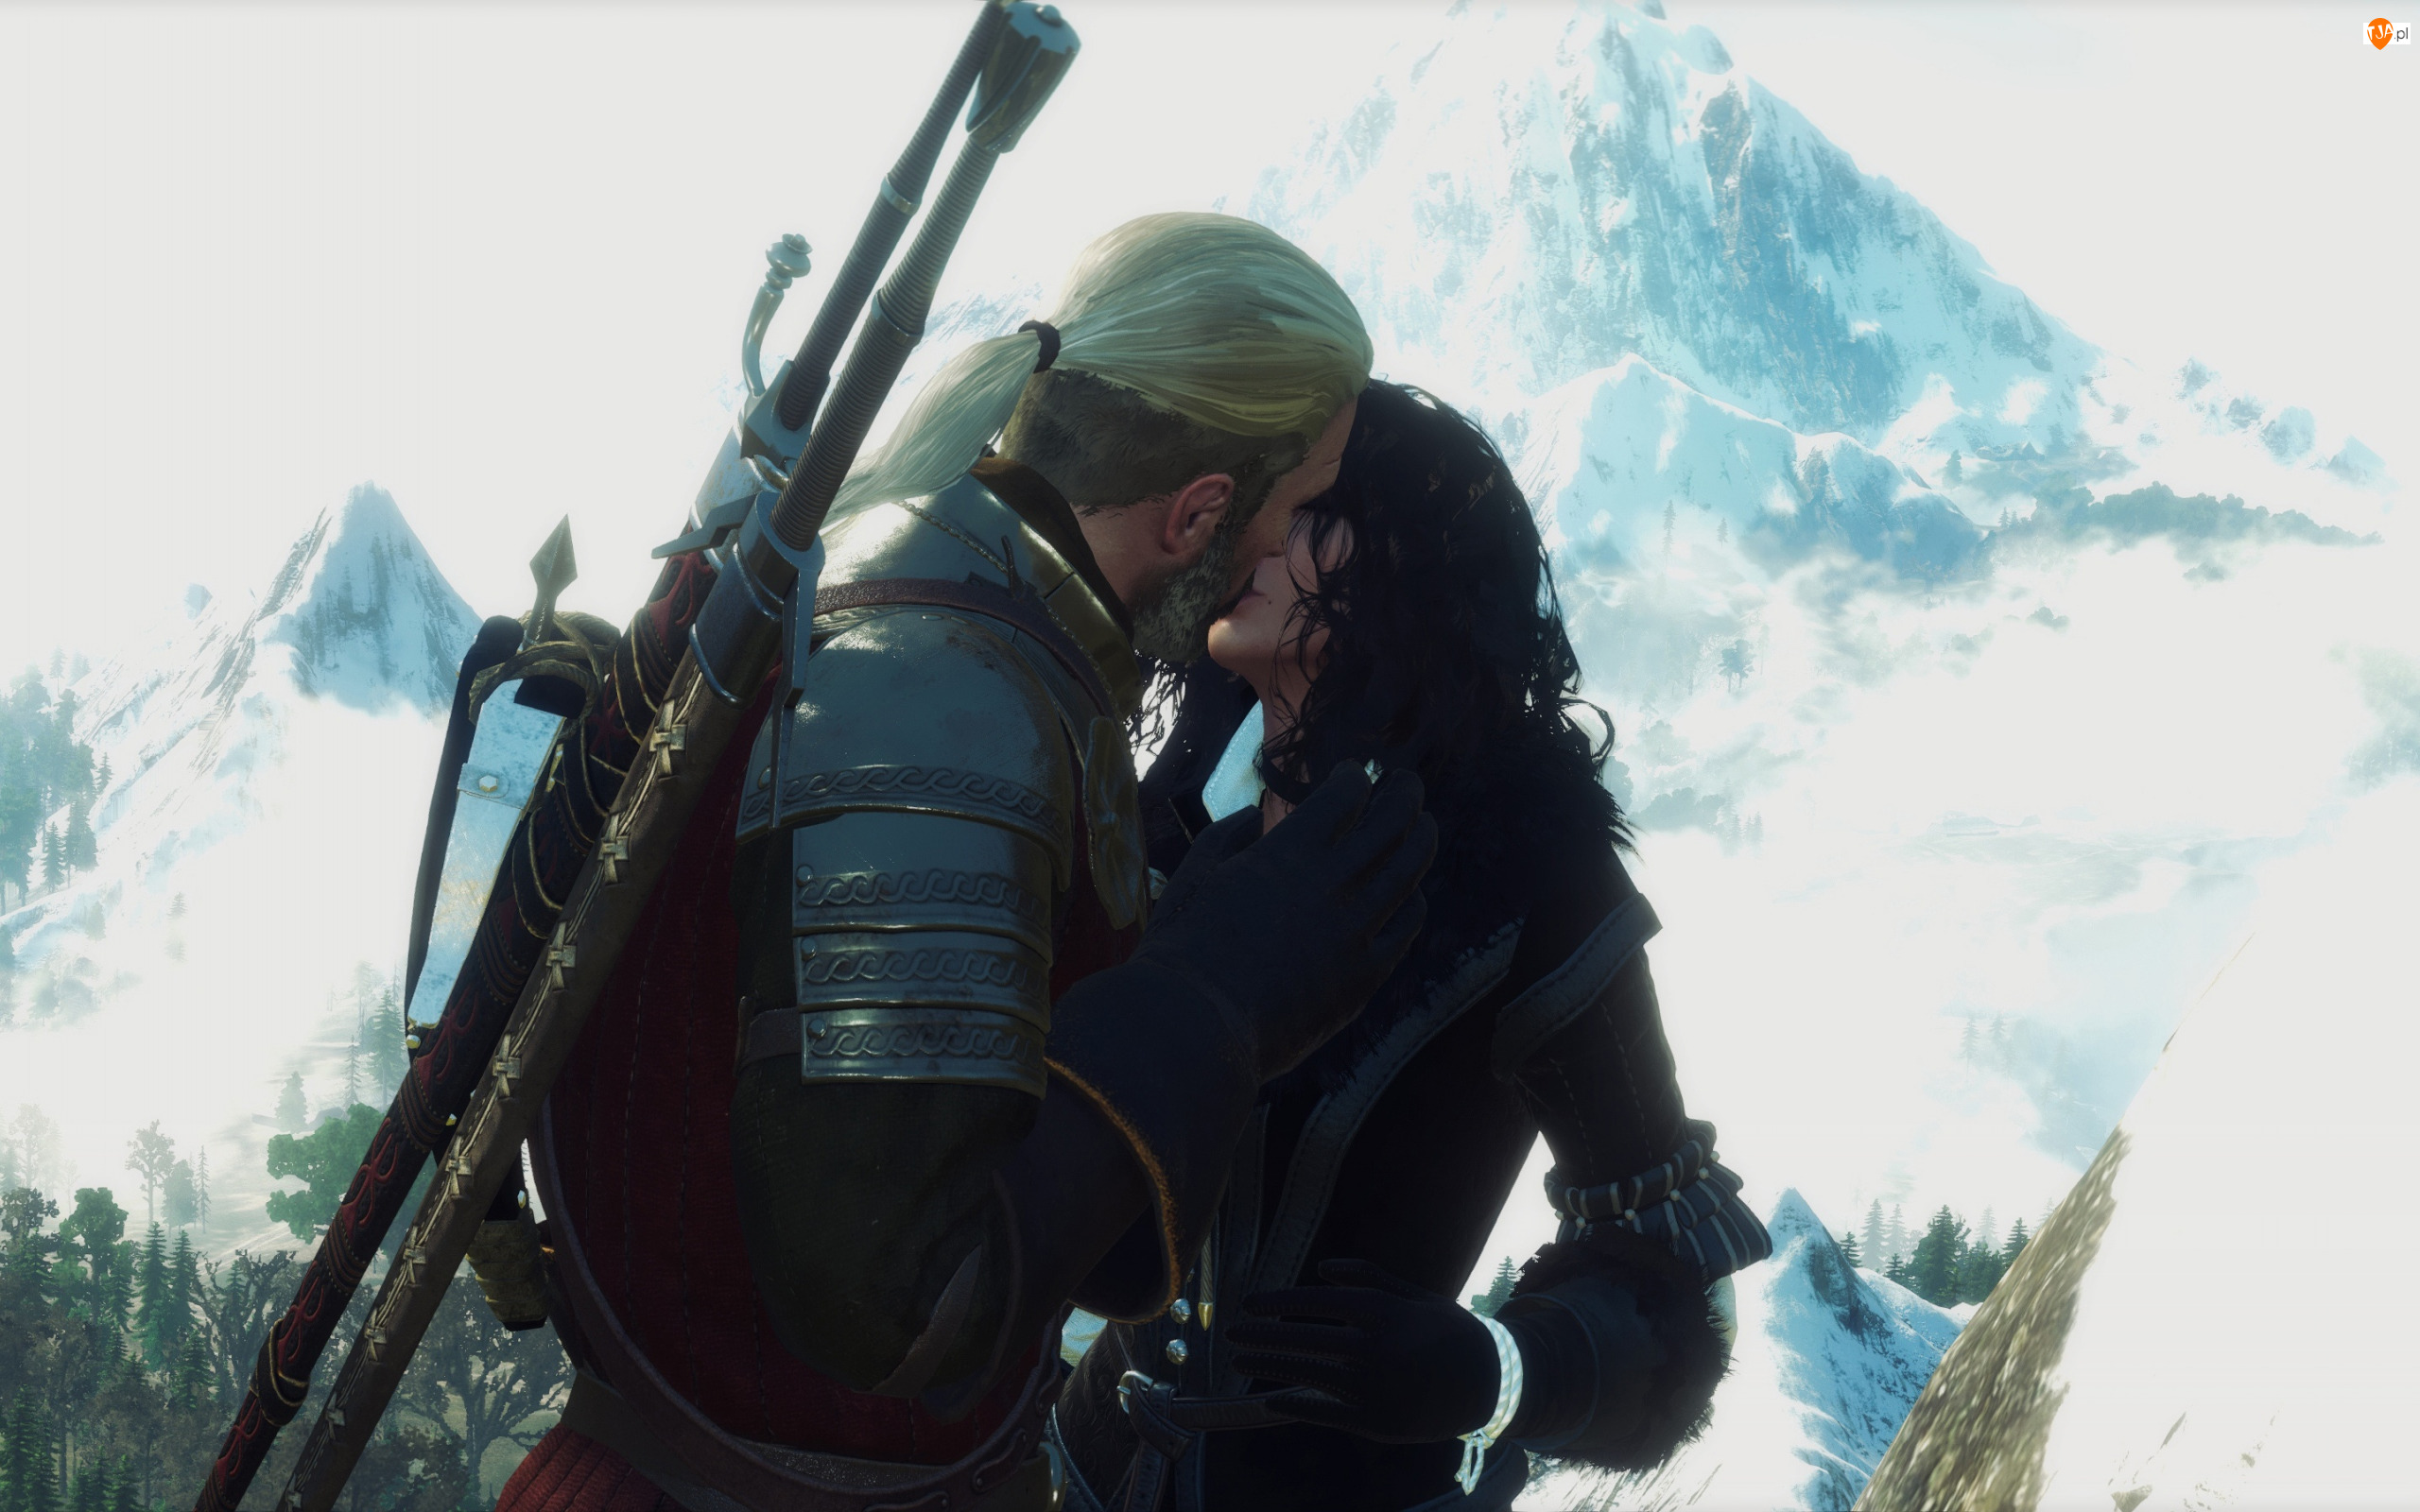 The Witcher 3 Wild Hunt, Gra, Geralt, Pocałunek, Wiedźmin 3 Dziki Gon, Yennefer